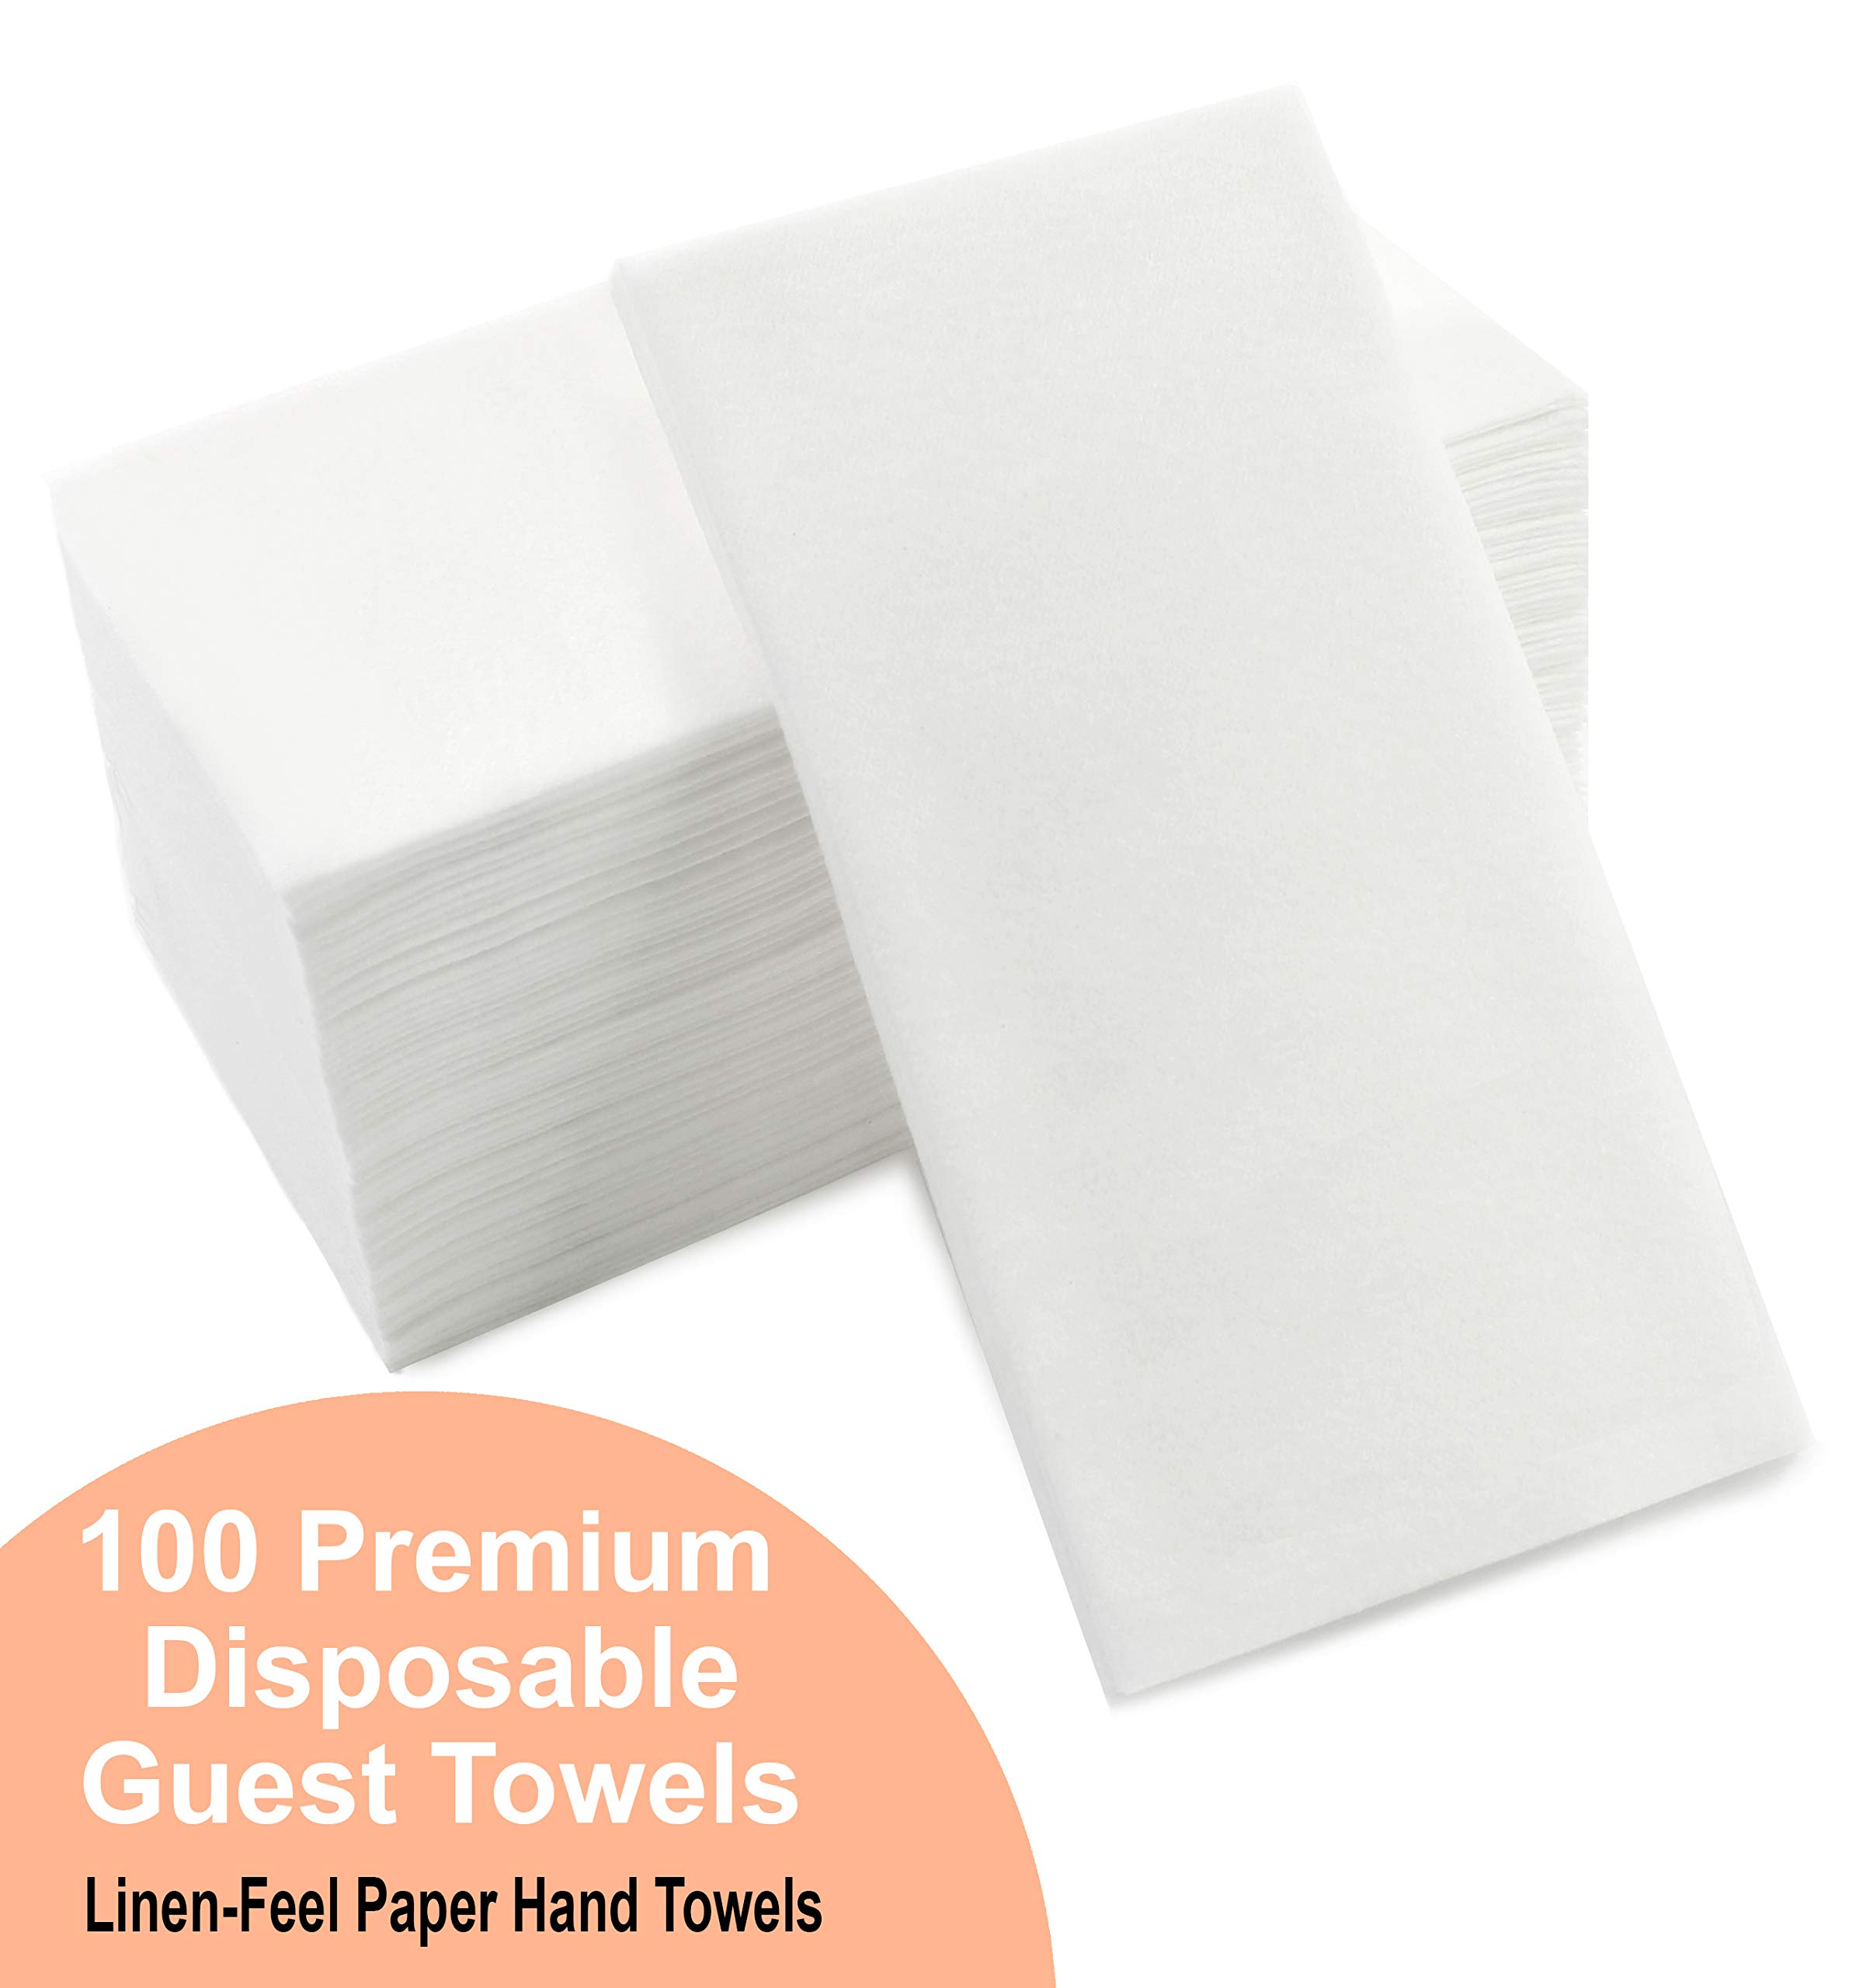 Cavepop 100 Set Disposable White Dinner Napkins, Linen Feel Hand Paper Towels for Plates, Dinner Table, Wedding, Guest Bathroom, Kitchen & More - 8.25 x 4 Inches